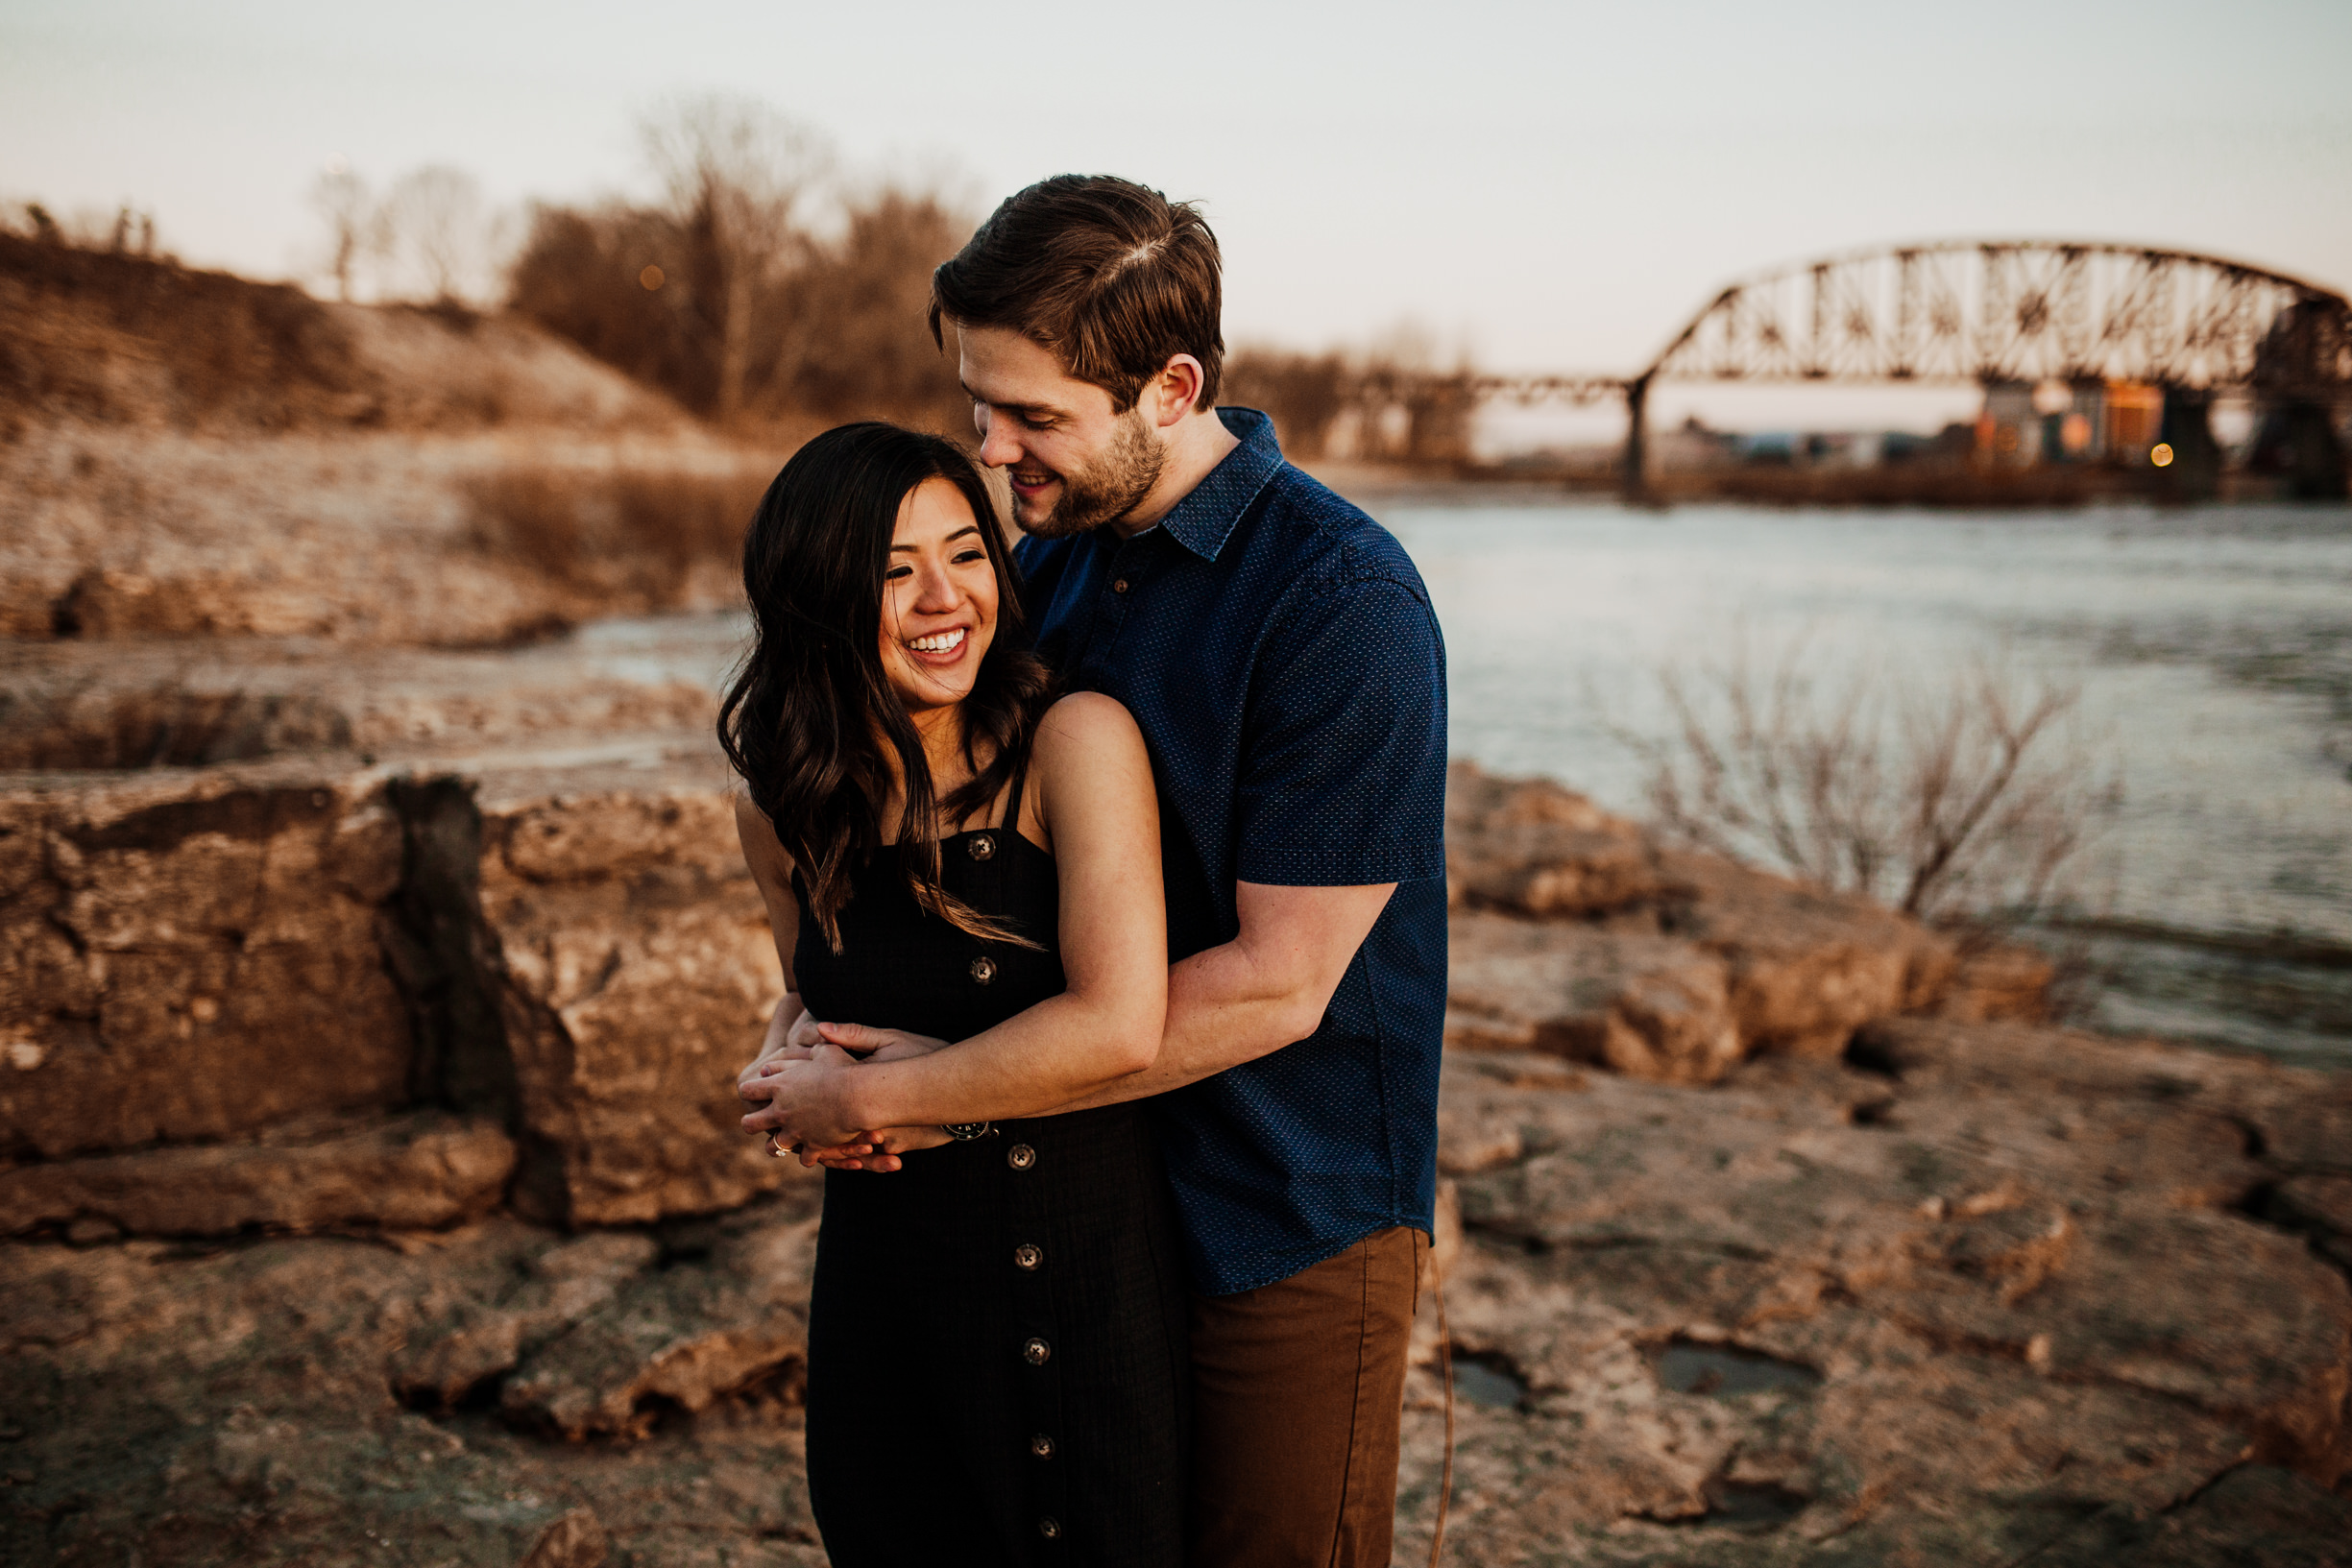 louisville-engagement-photographer-crystal-ludwick-photo-tammy-and-caleb-engagement-photography (3 of 32).jpg